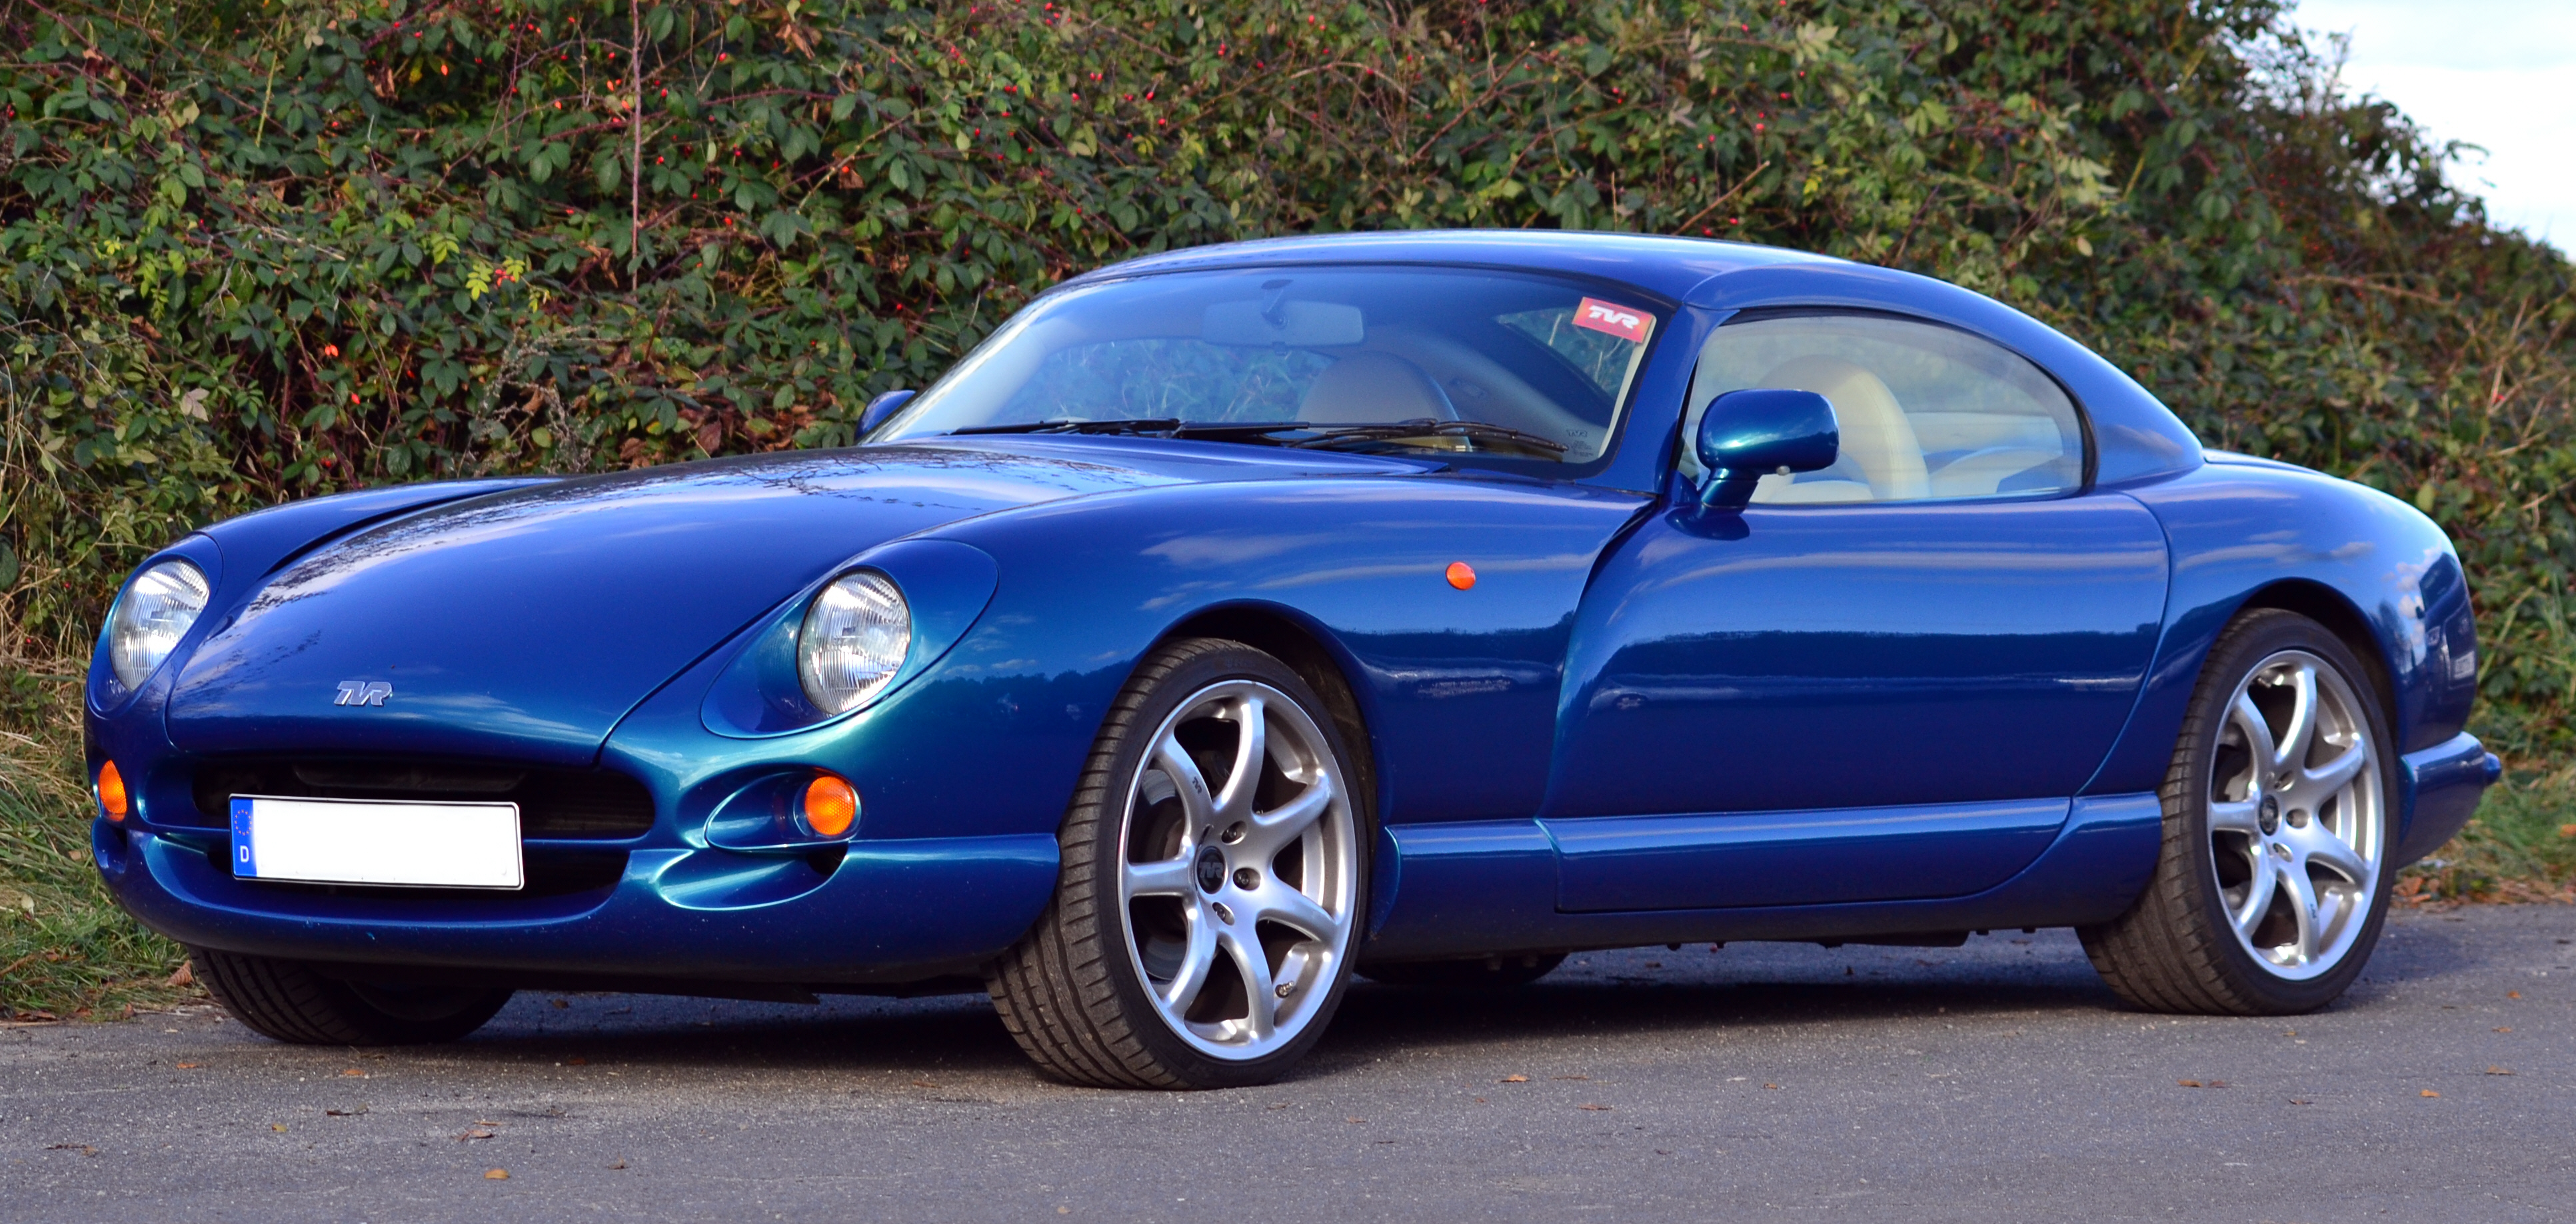 https://www.smiths-instruments.co.uk/documents/blog/cars/tvr/tvr-cerbera-speed-six-02-587.jpg